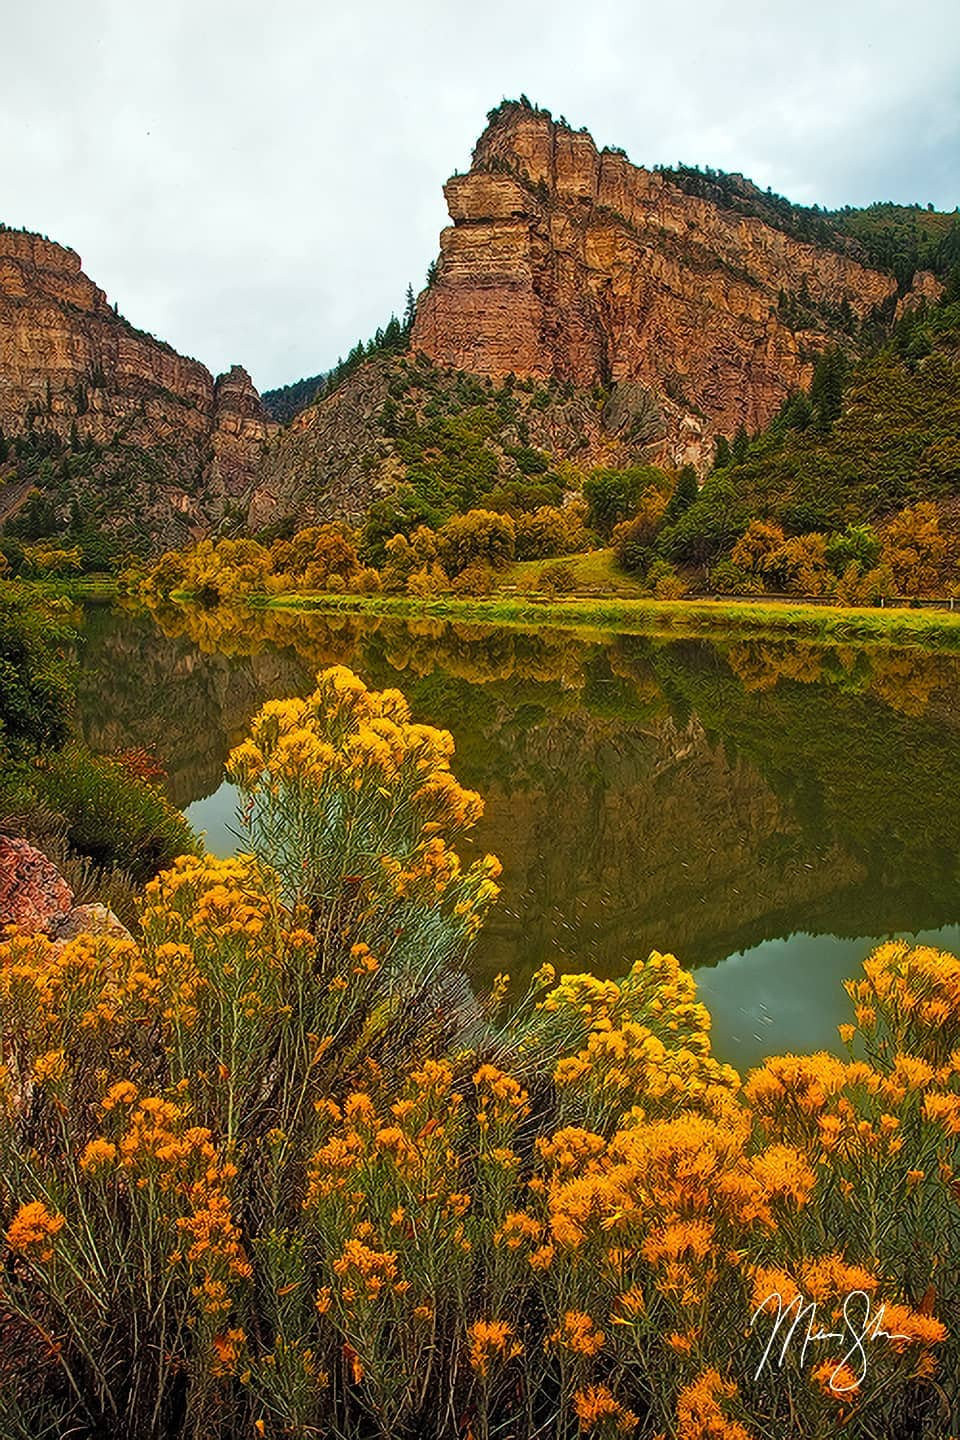 Autumn in Glenwood Canyon